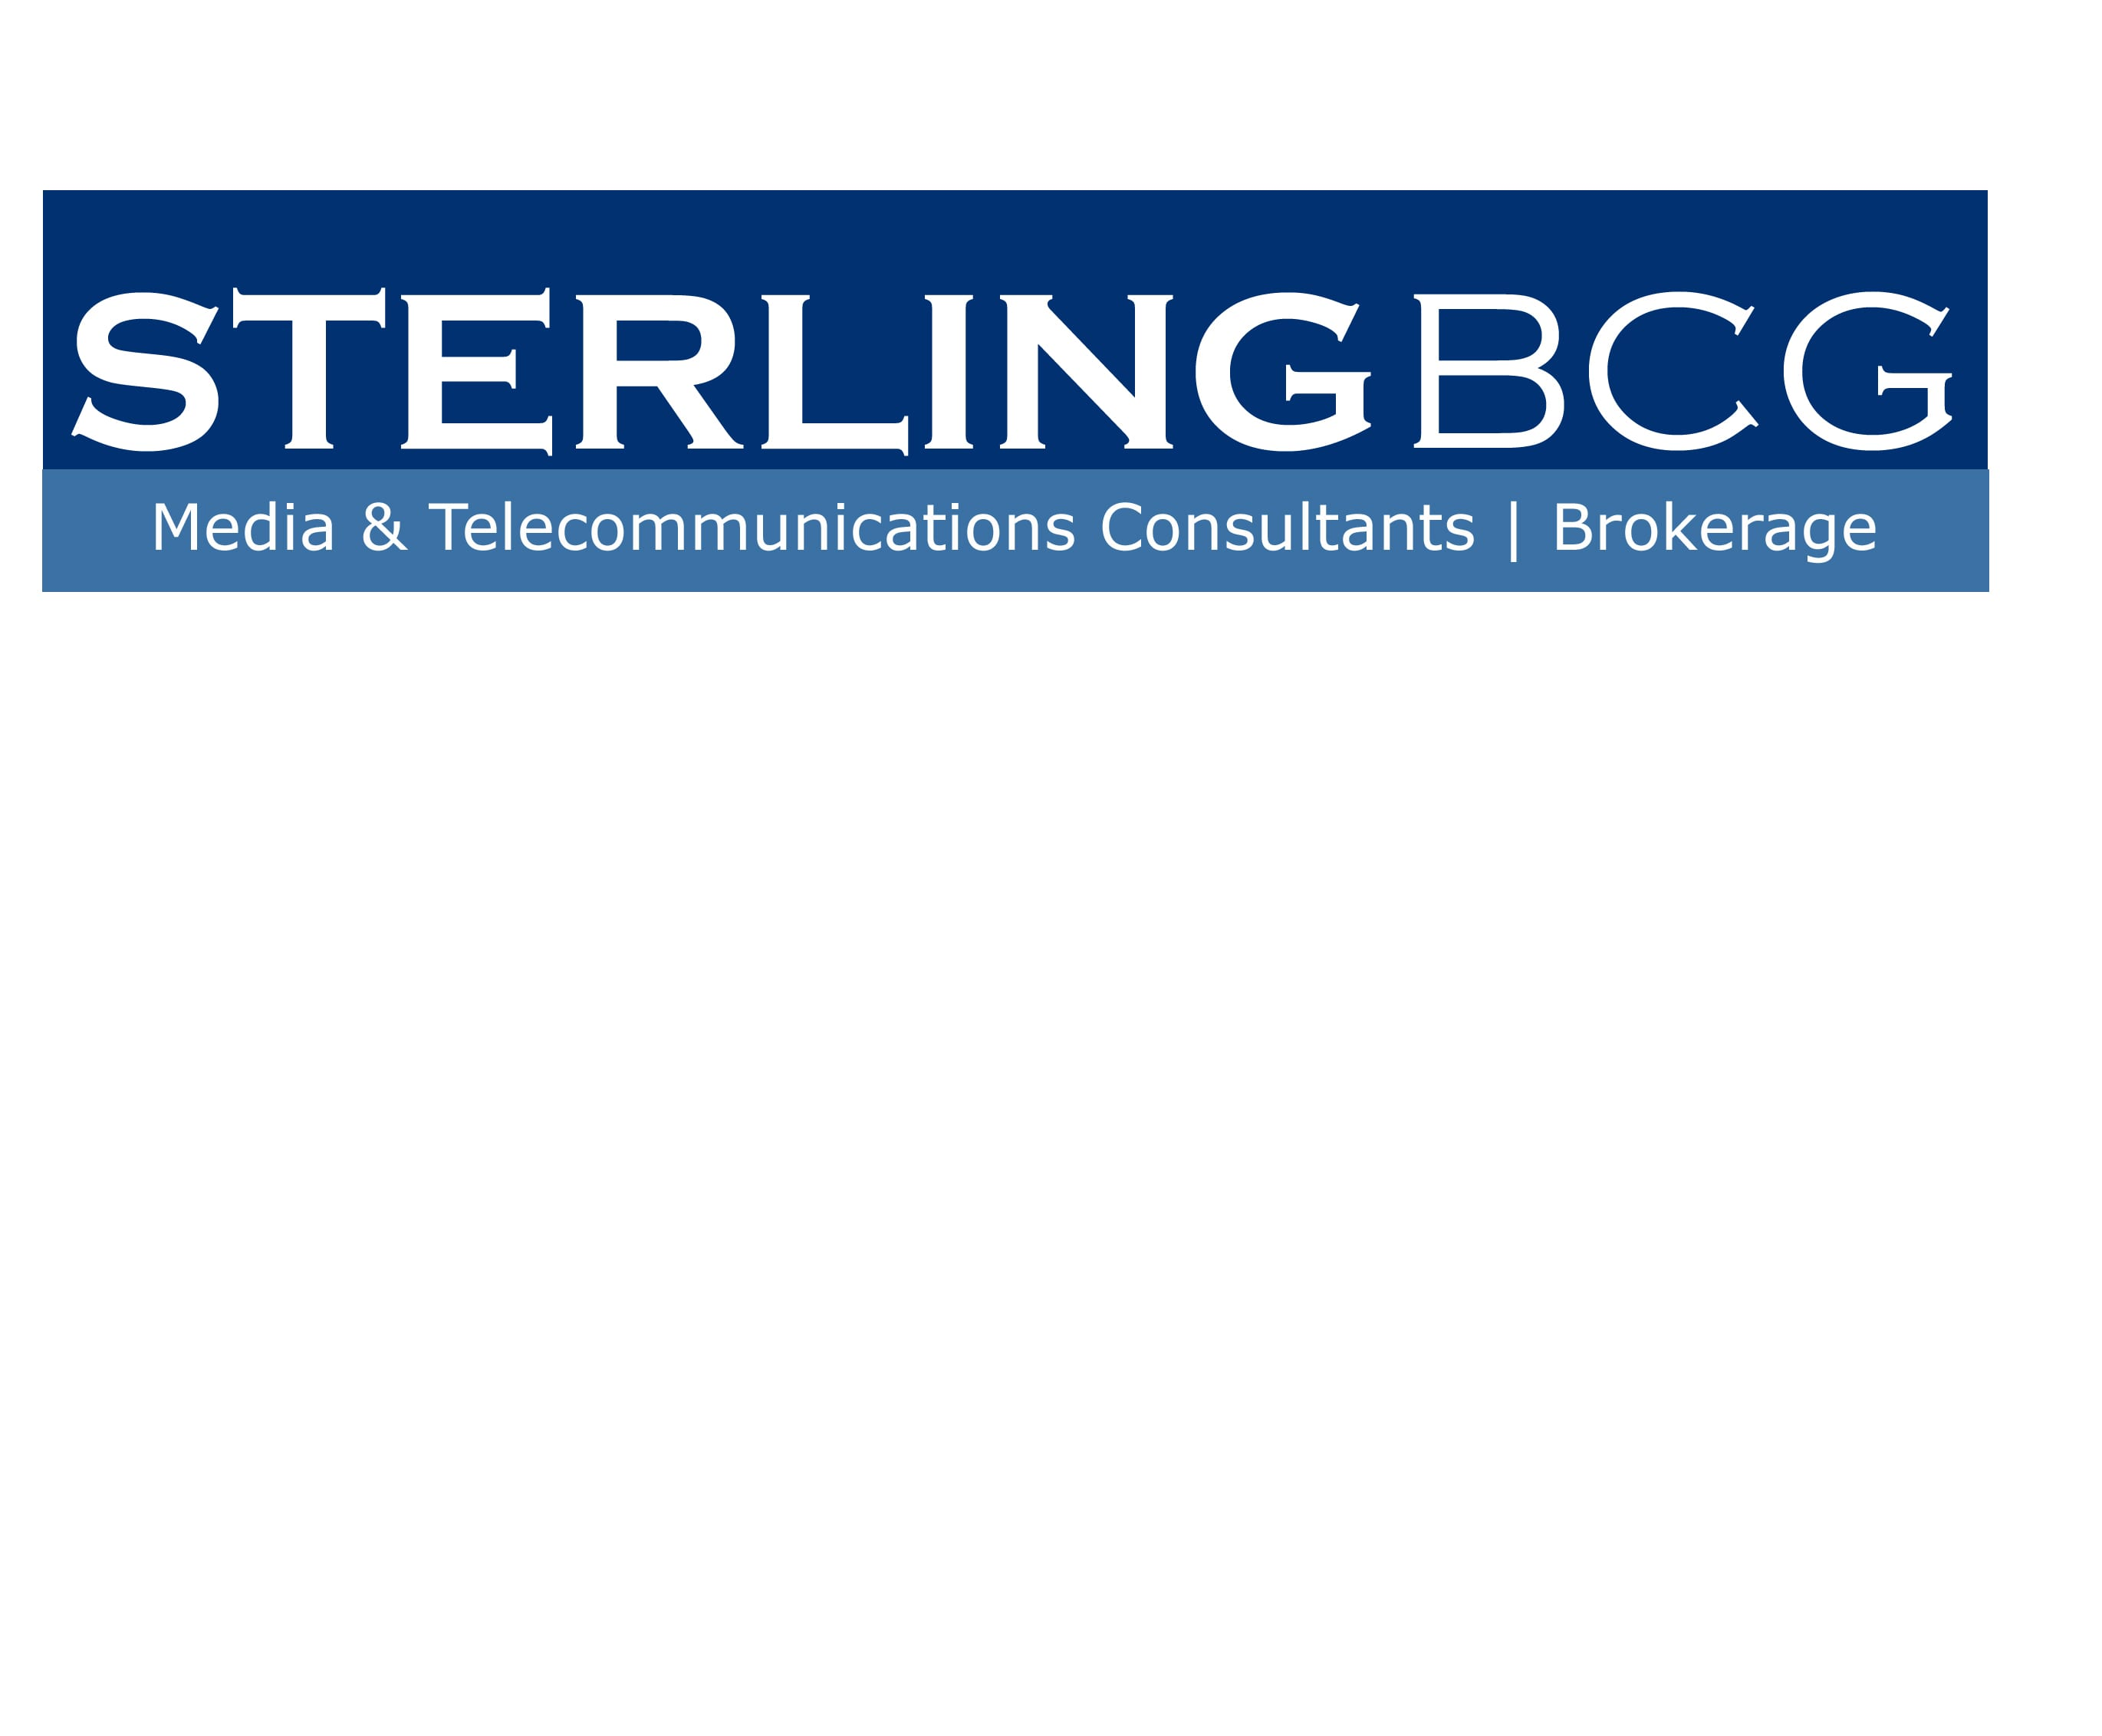 SterlingBCG